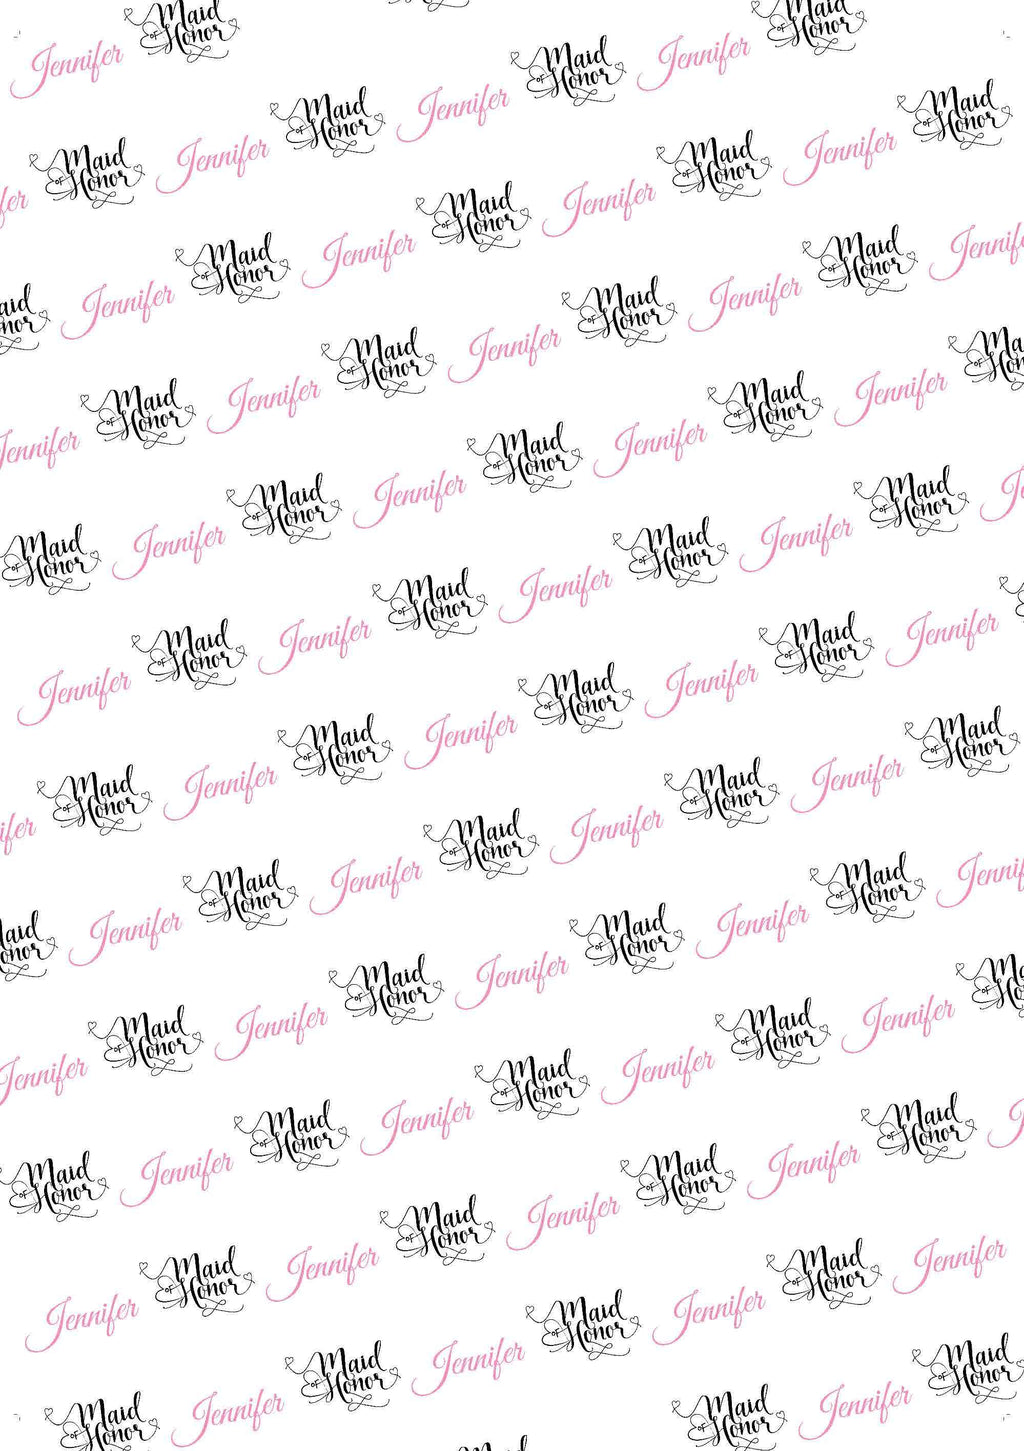 Wedding Maid Of Honor Proposal Personalized Tissue Paper - Potter's Printing